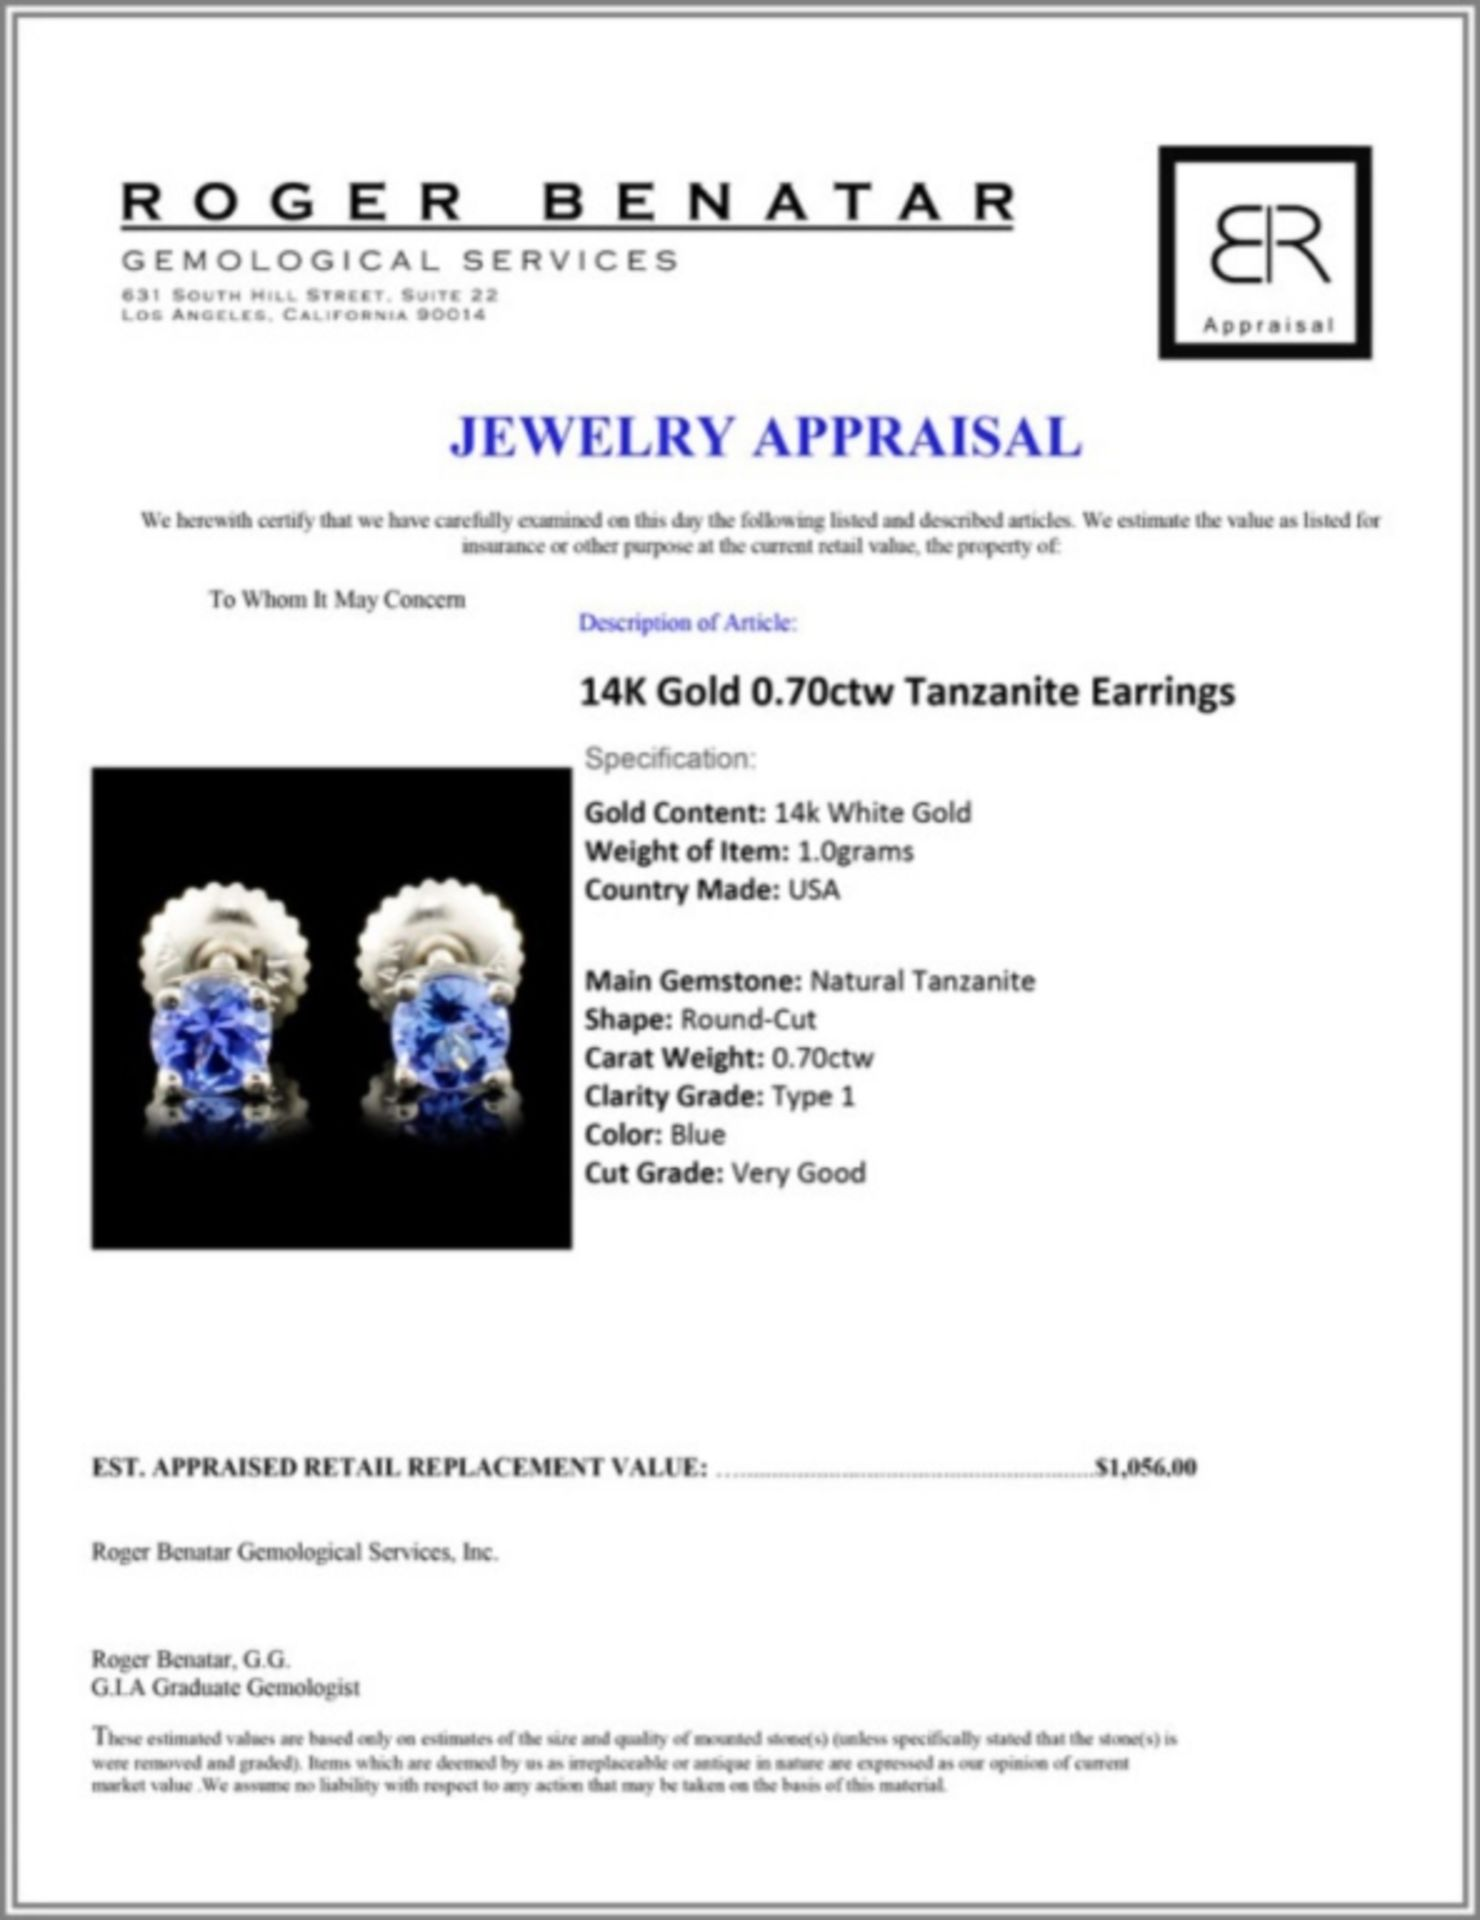 14K Gold 0.70ctw Tanzanite Earrings - Image 3 of 3